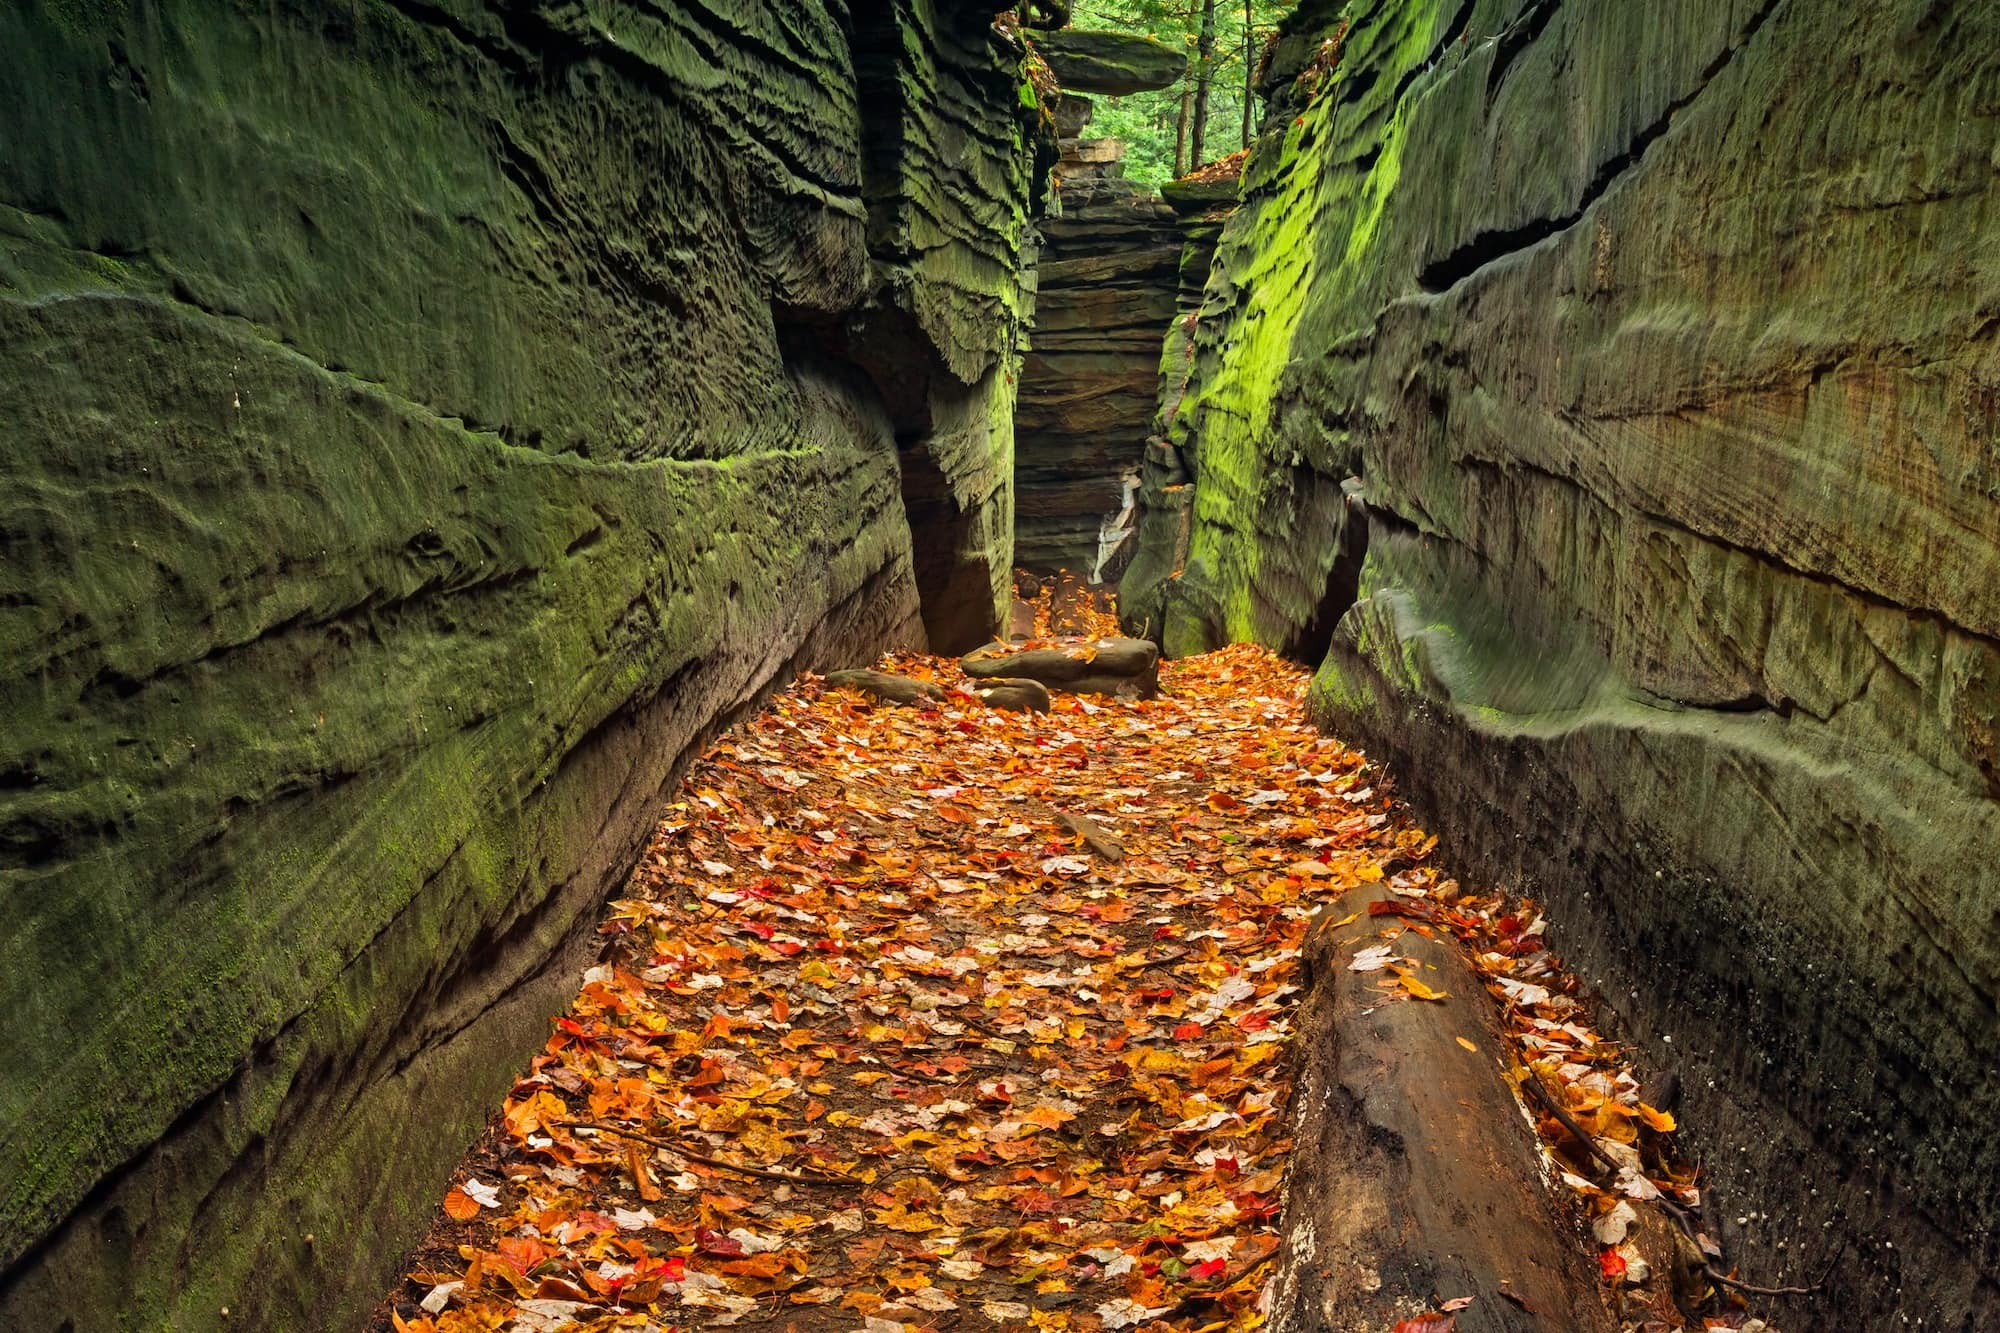 Cuyahoga Valley National Park // Check out the best National Parks to visit in the fall for the a leaf-peeping vacation. Enjoy autumn colors in these 10 great parks.